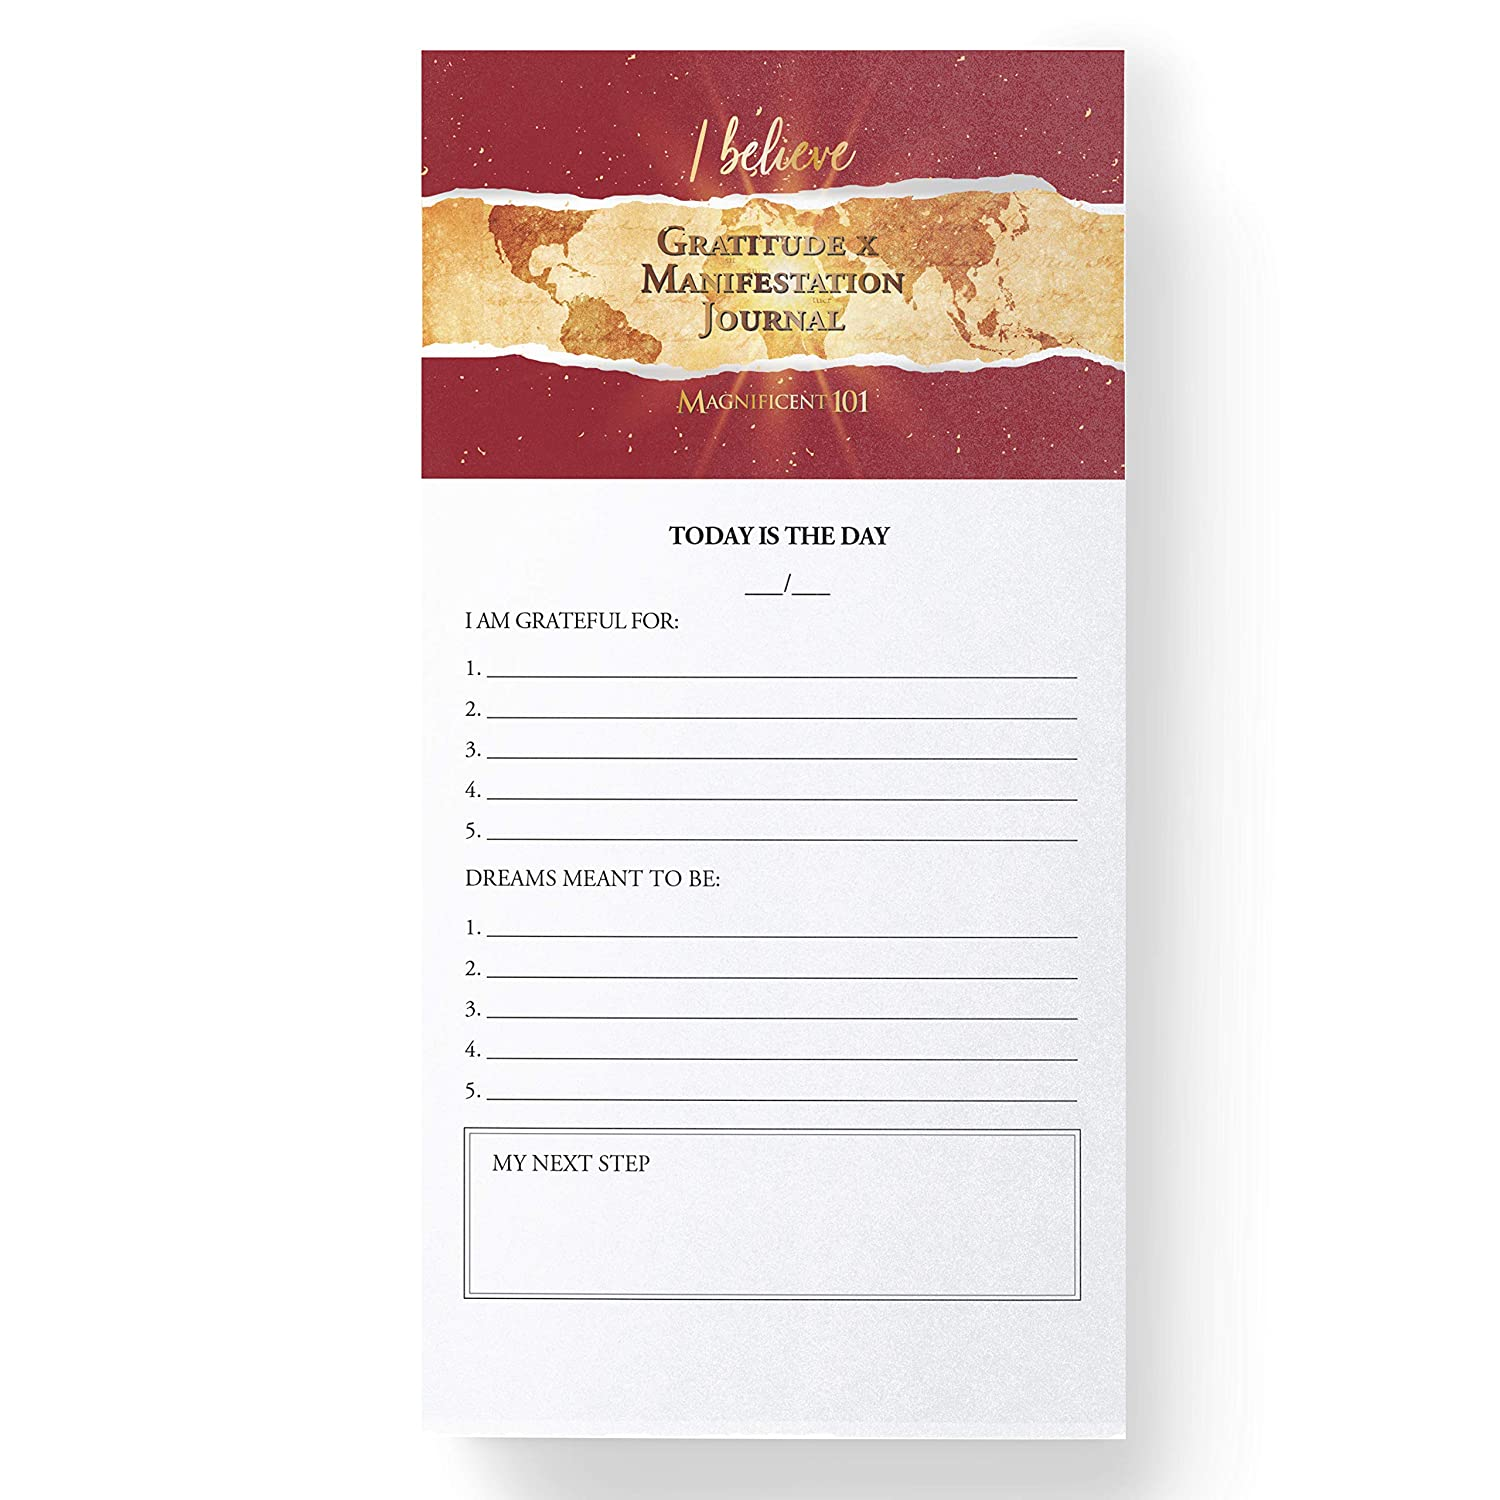 MAGNIFICENT101 Magnetic Notepad: Gratitude x Manifestation Journal - Create a Vision for Your Dream Life in Your Refrigerator | Inspirational Positive Gifts | Motivational Fridge Magnet 5.5x5.5 in.